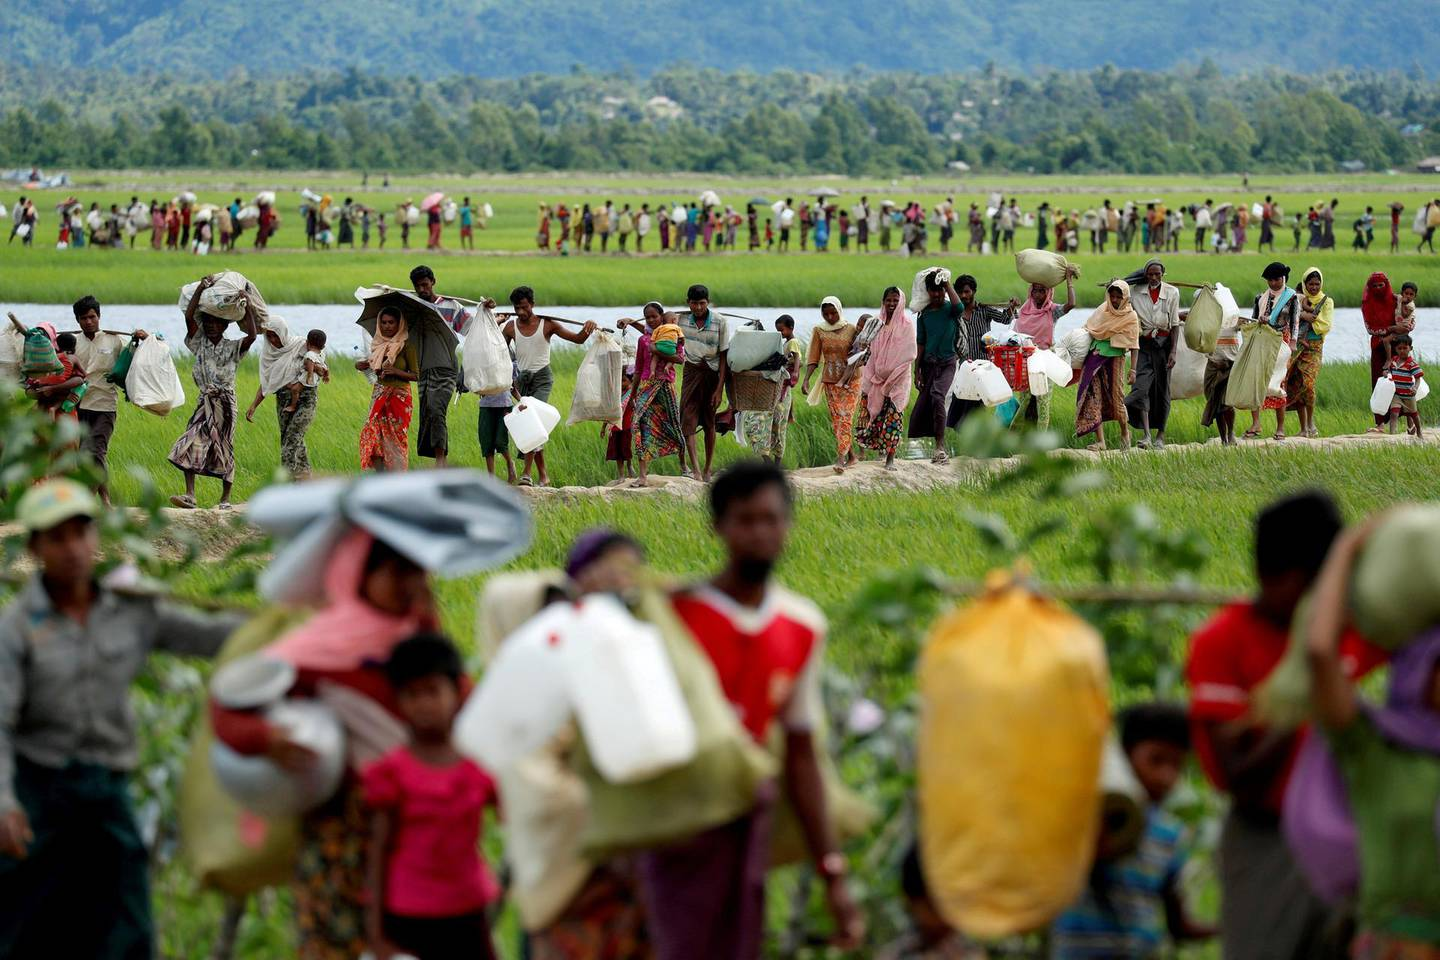 FILE PHOTO: Rohingya refugees, who crossed the border from Myanmar two days before, walk after they received permission from the Bangladeshi army to continue on to the refugee camps, in Palang Khali, near Cox's Bazar, Bangladesh October 19, 2017. To match Special Report MYANMAR-ROHINGYA/BATTALIONS     REUTERS/Jorge Silva/File Photo